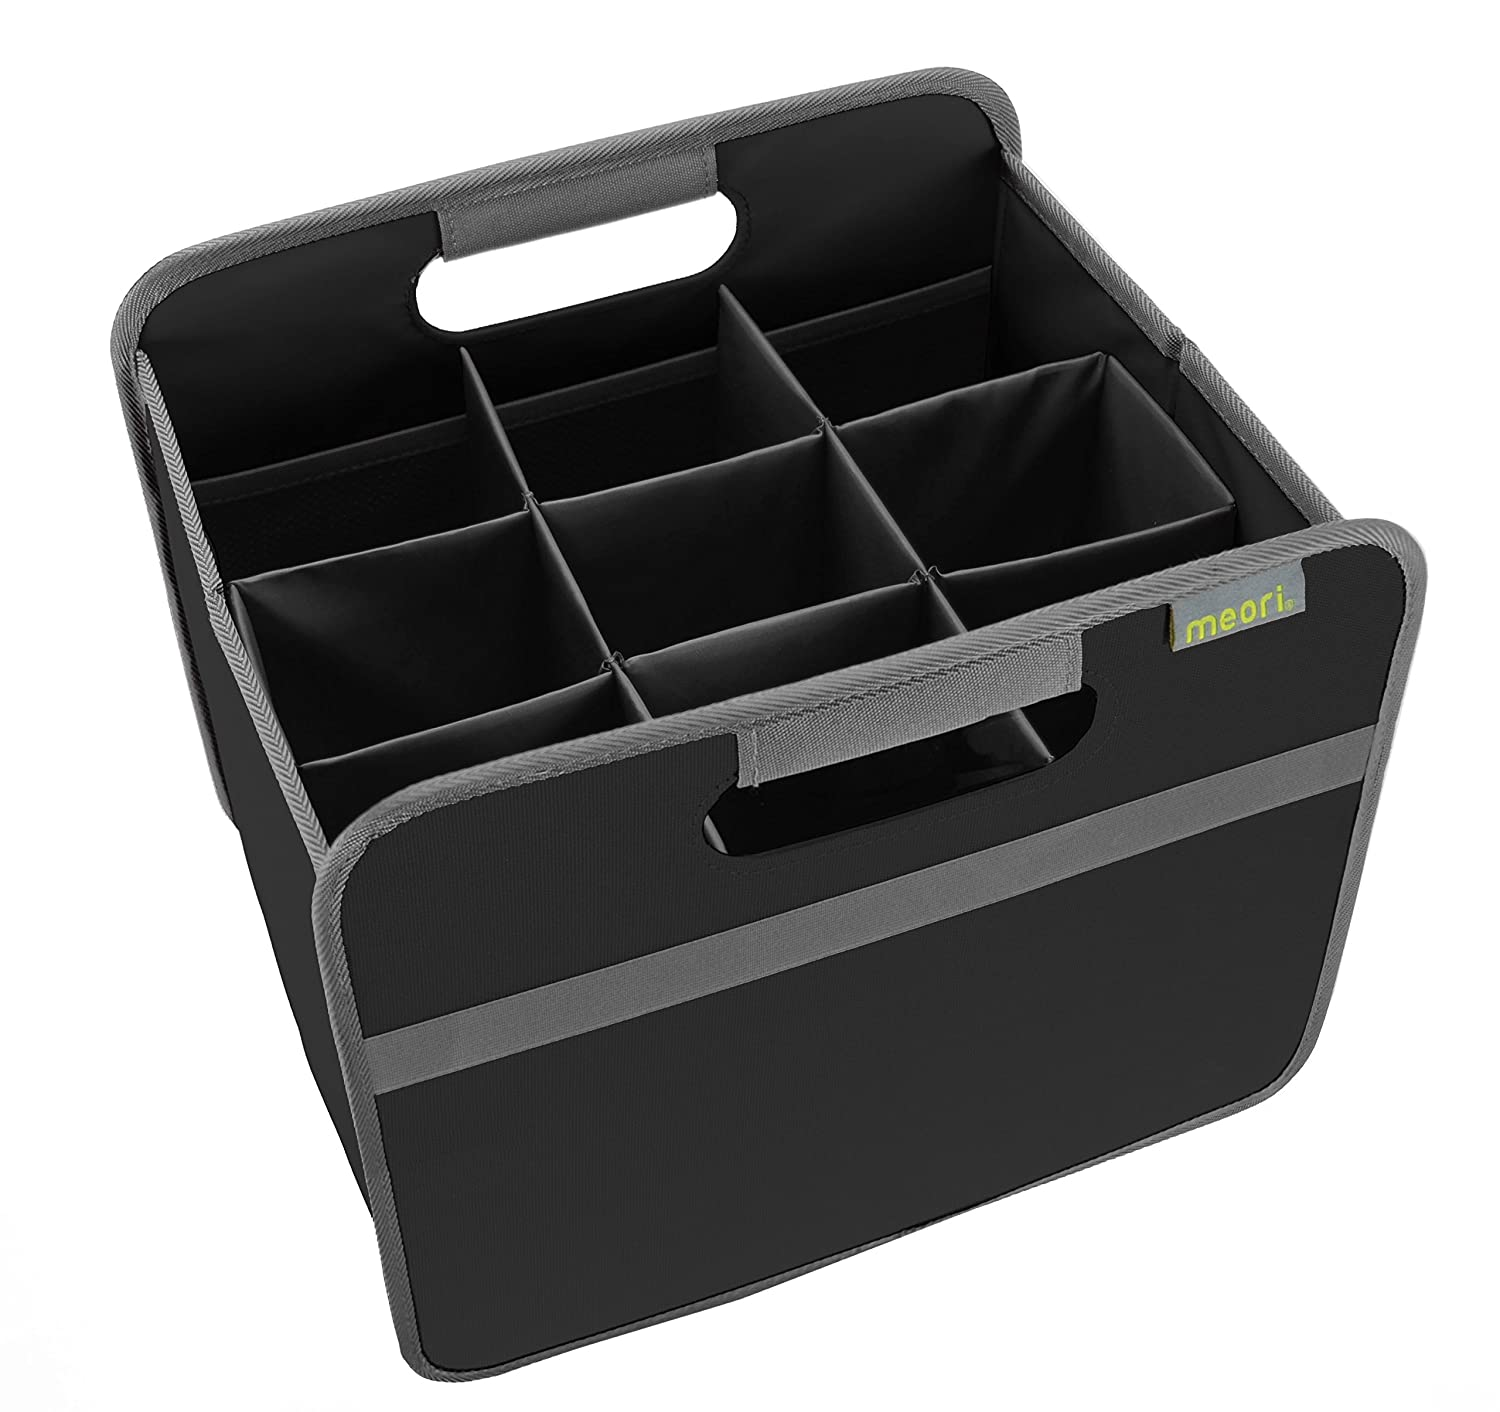 meori 9 Bottle Wine Carrier - Includes Small Foldable Storage Box (10 1/4